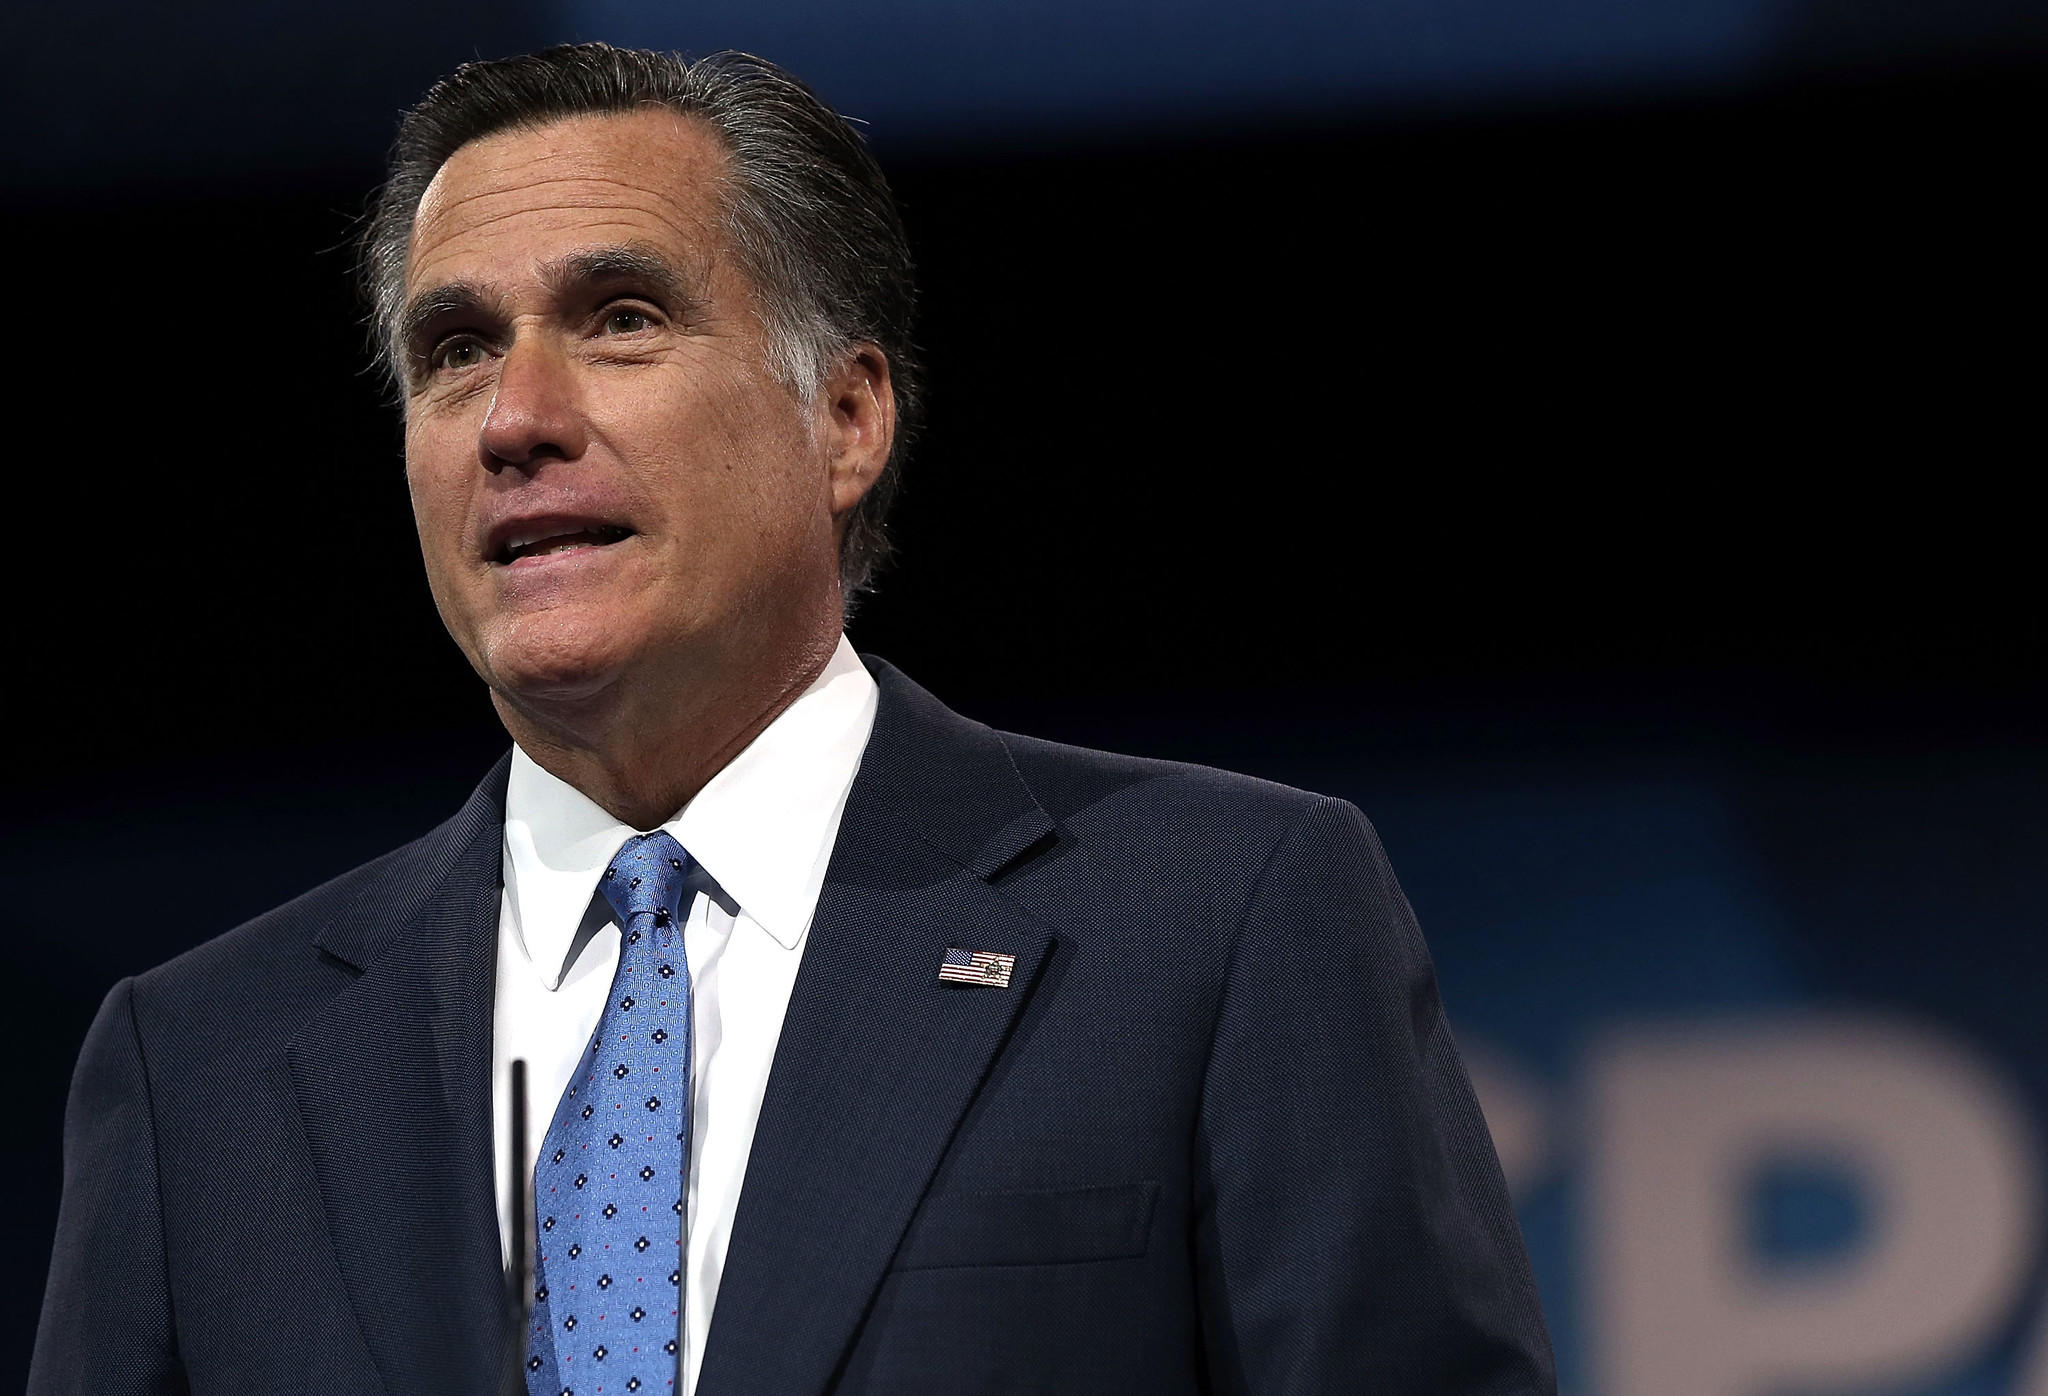 Former Republican presidential candidate and former Massachusetts Governor Mitt Romney delivers remarks during the second day of the 40th annual Conservative Political Action Conference (CPAC).